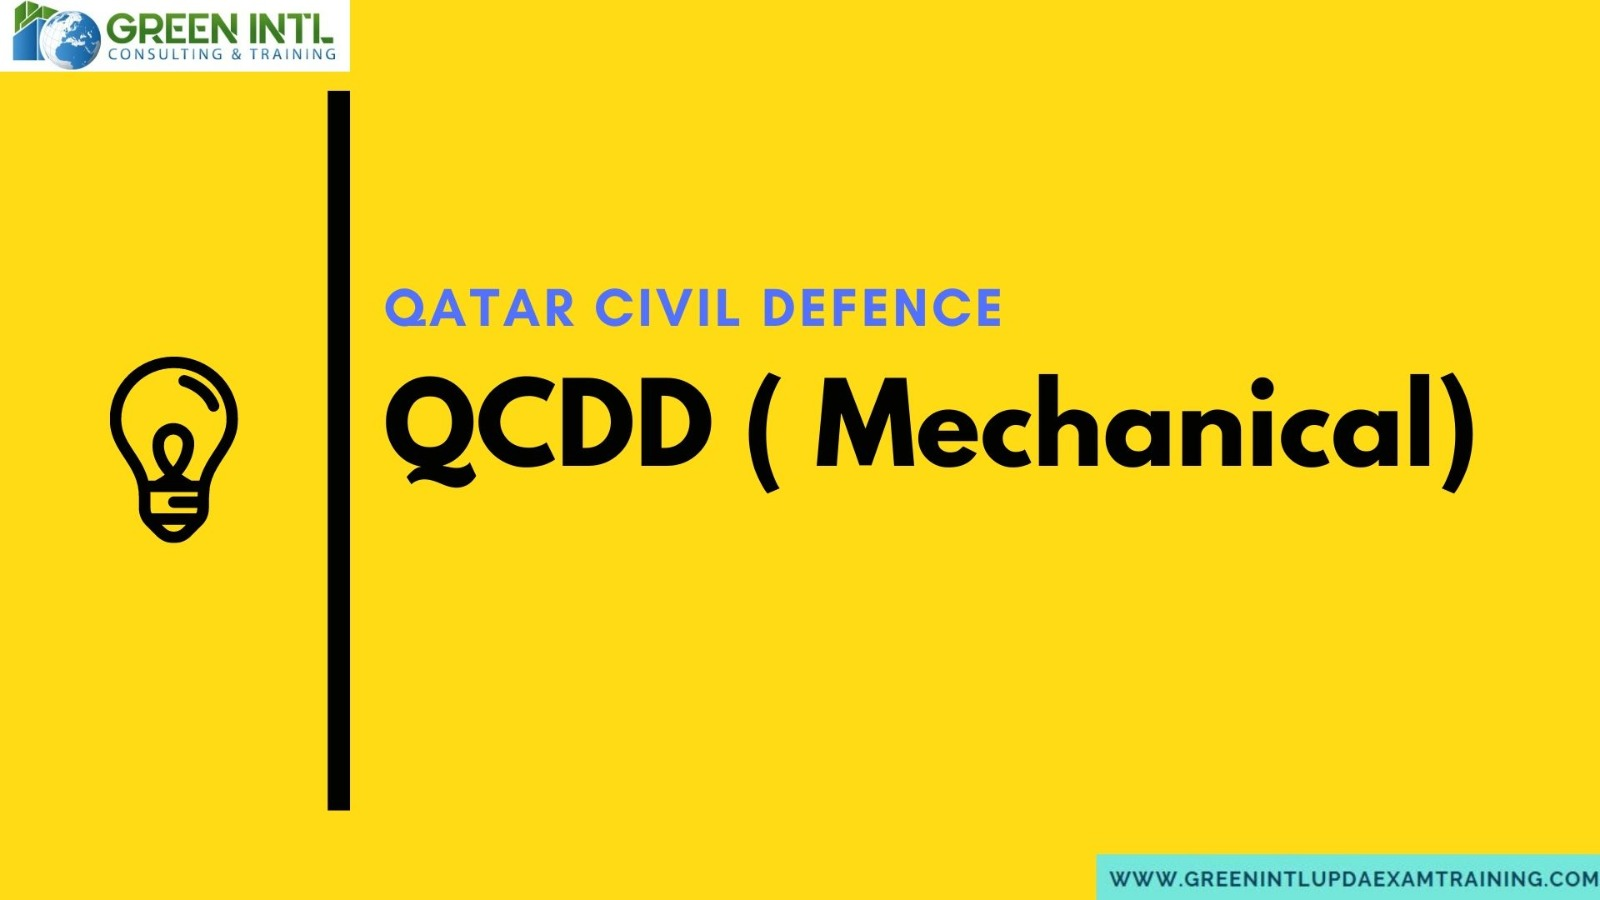 QCDD MECHANICAL